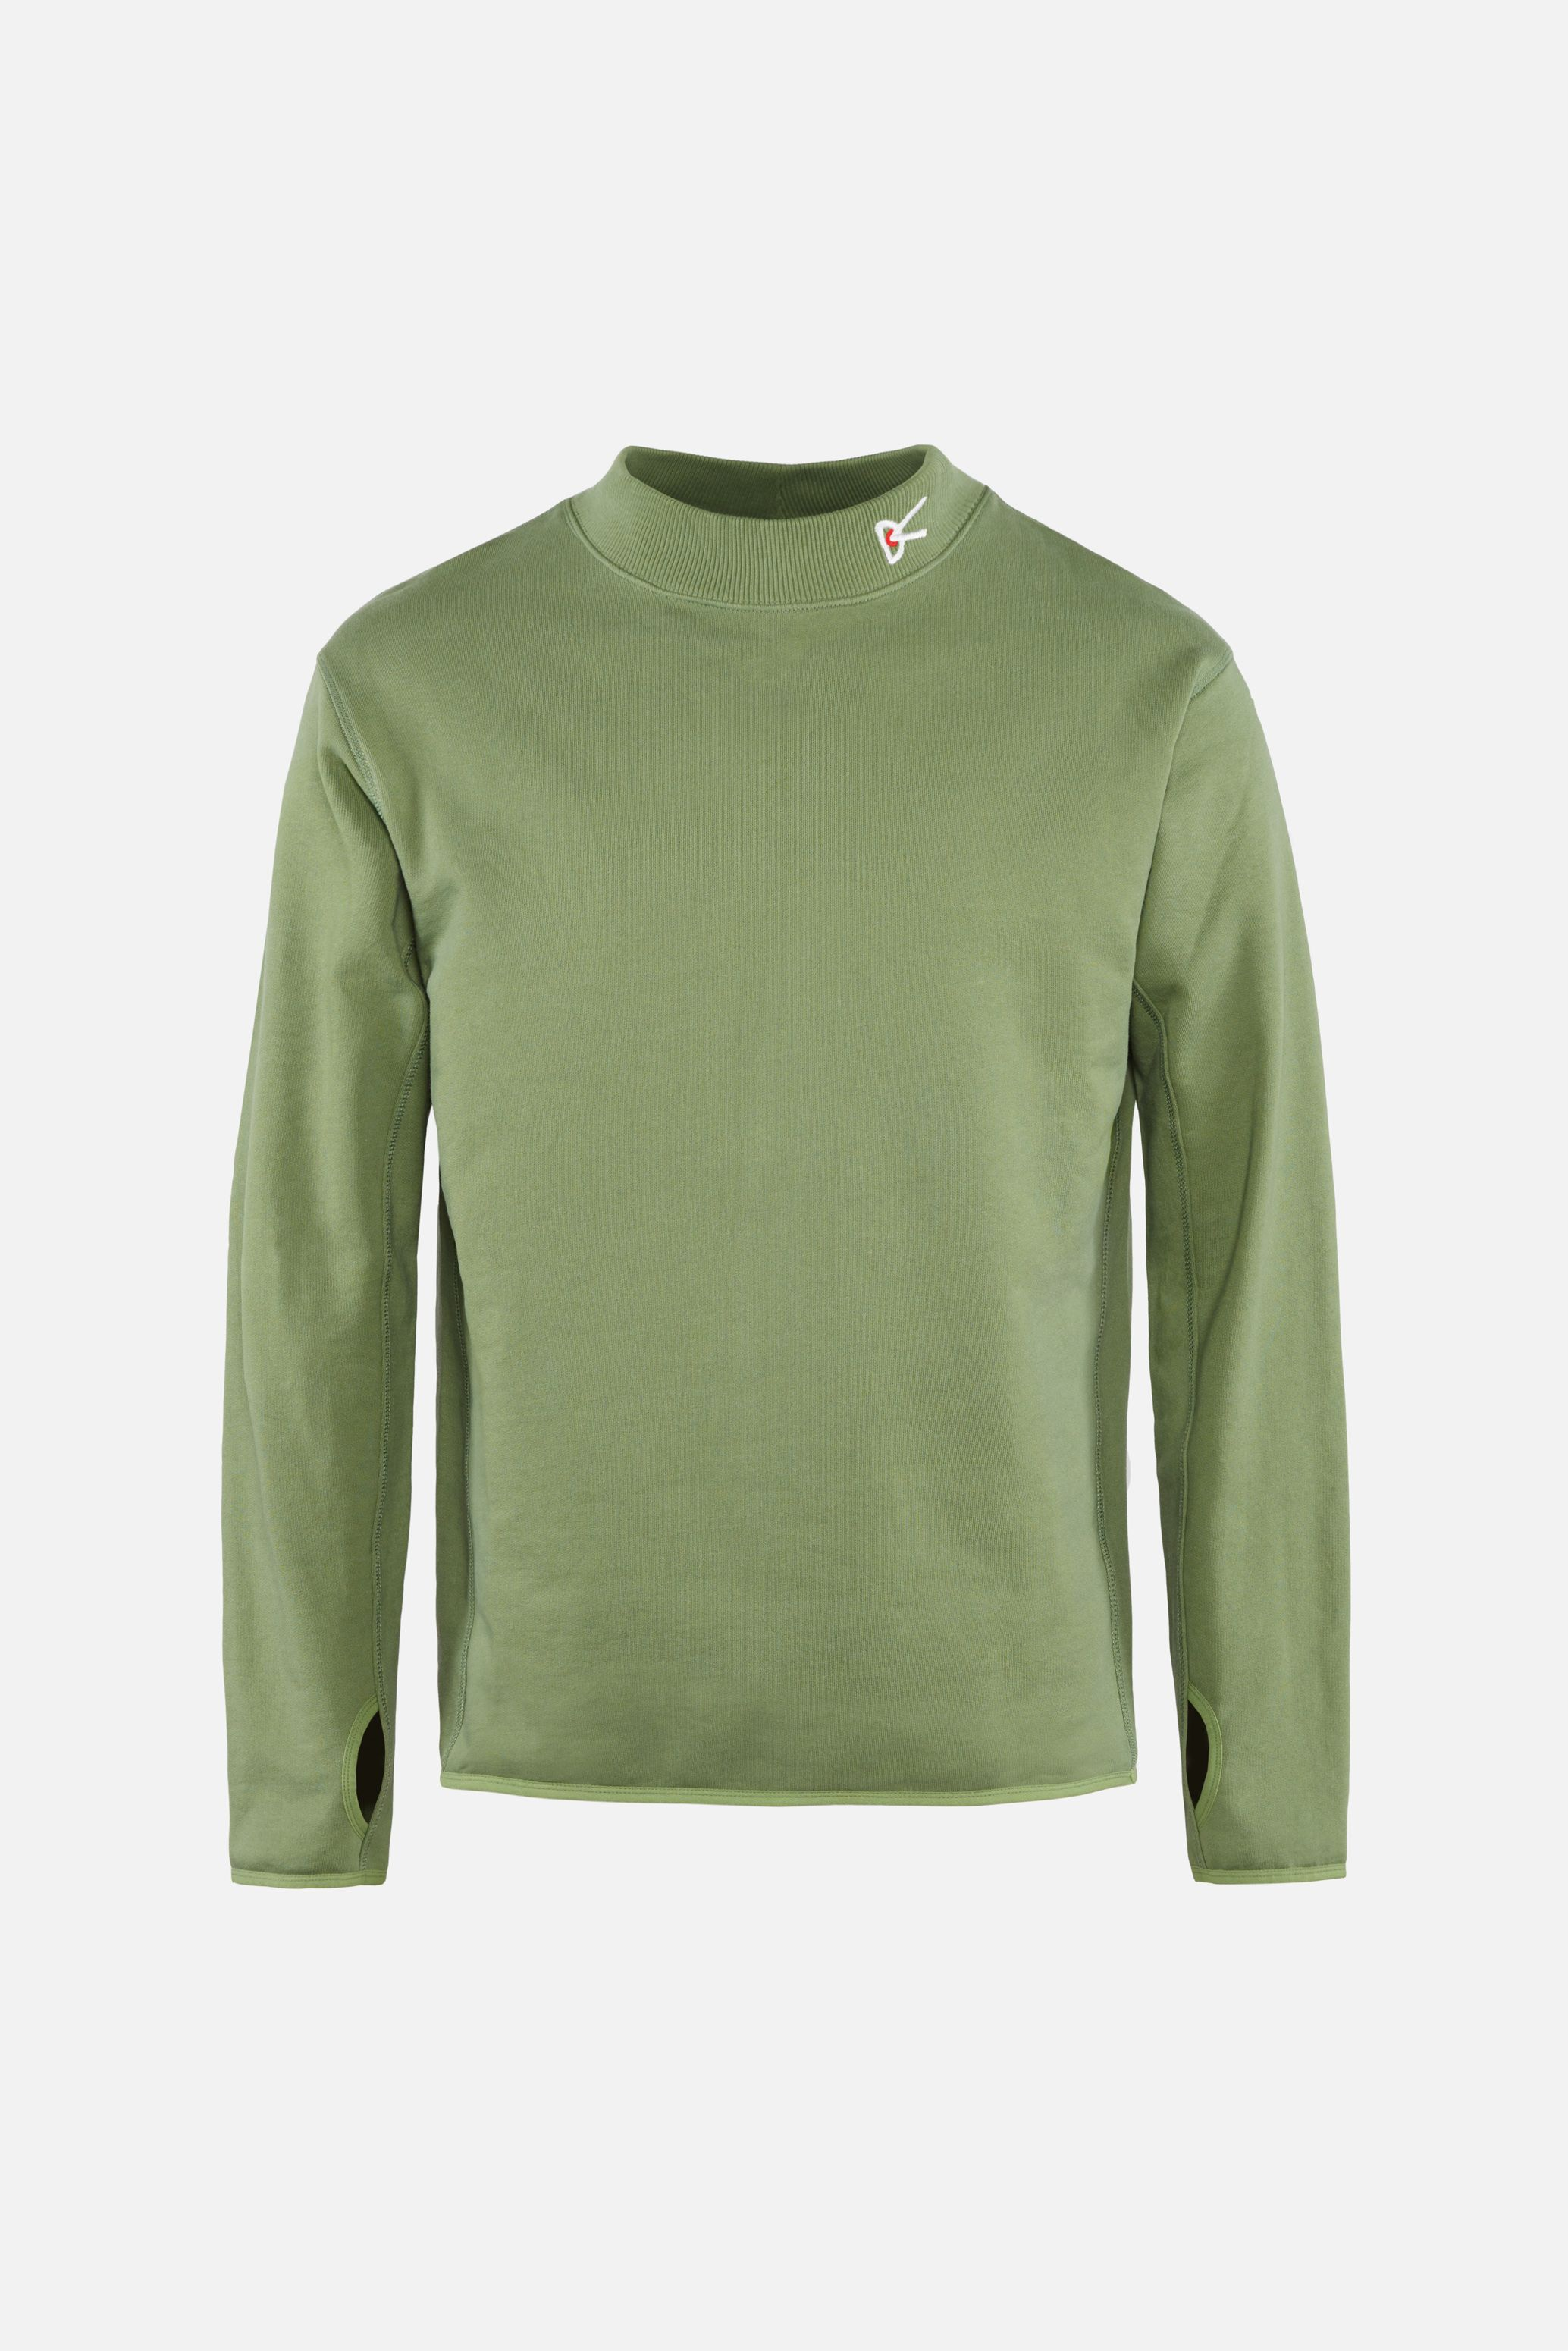 Hiei Mock Neck Sweatshirt, Woods